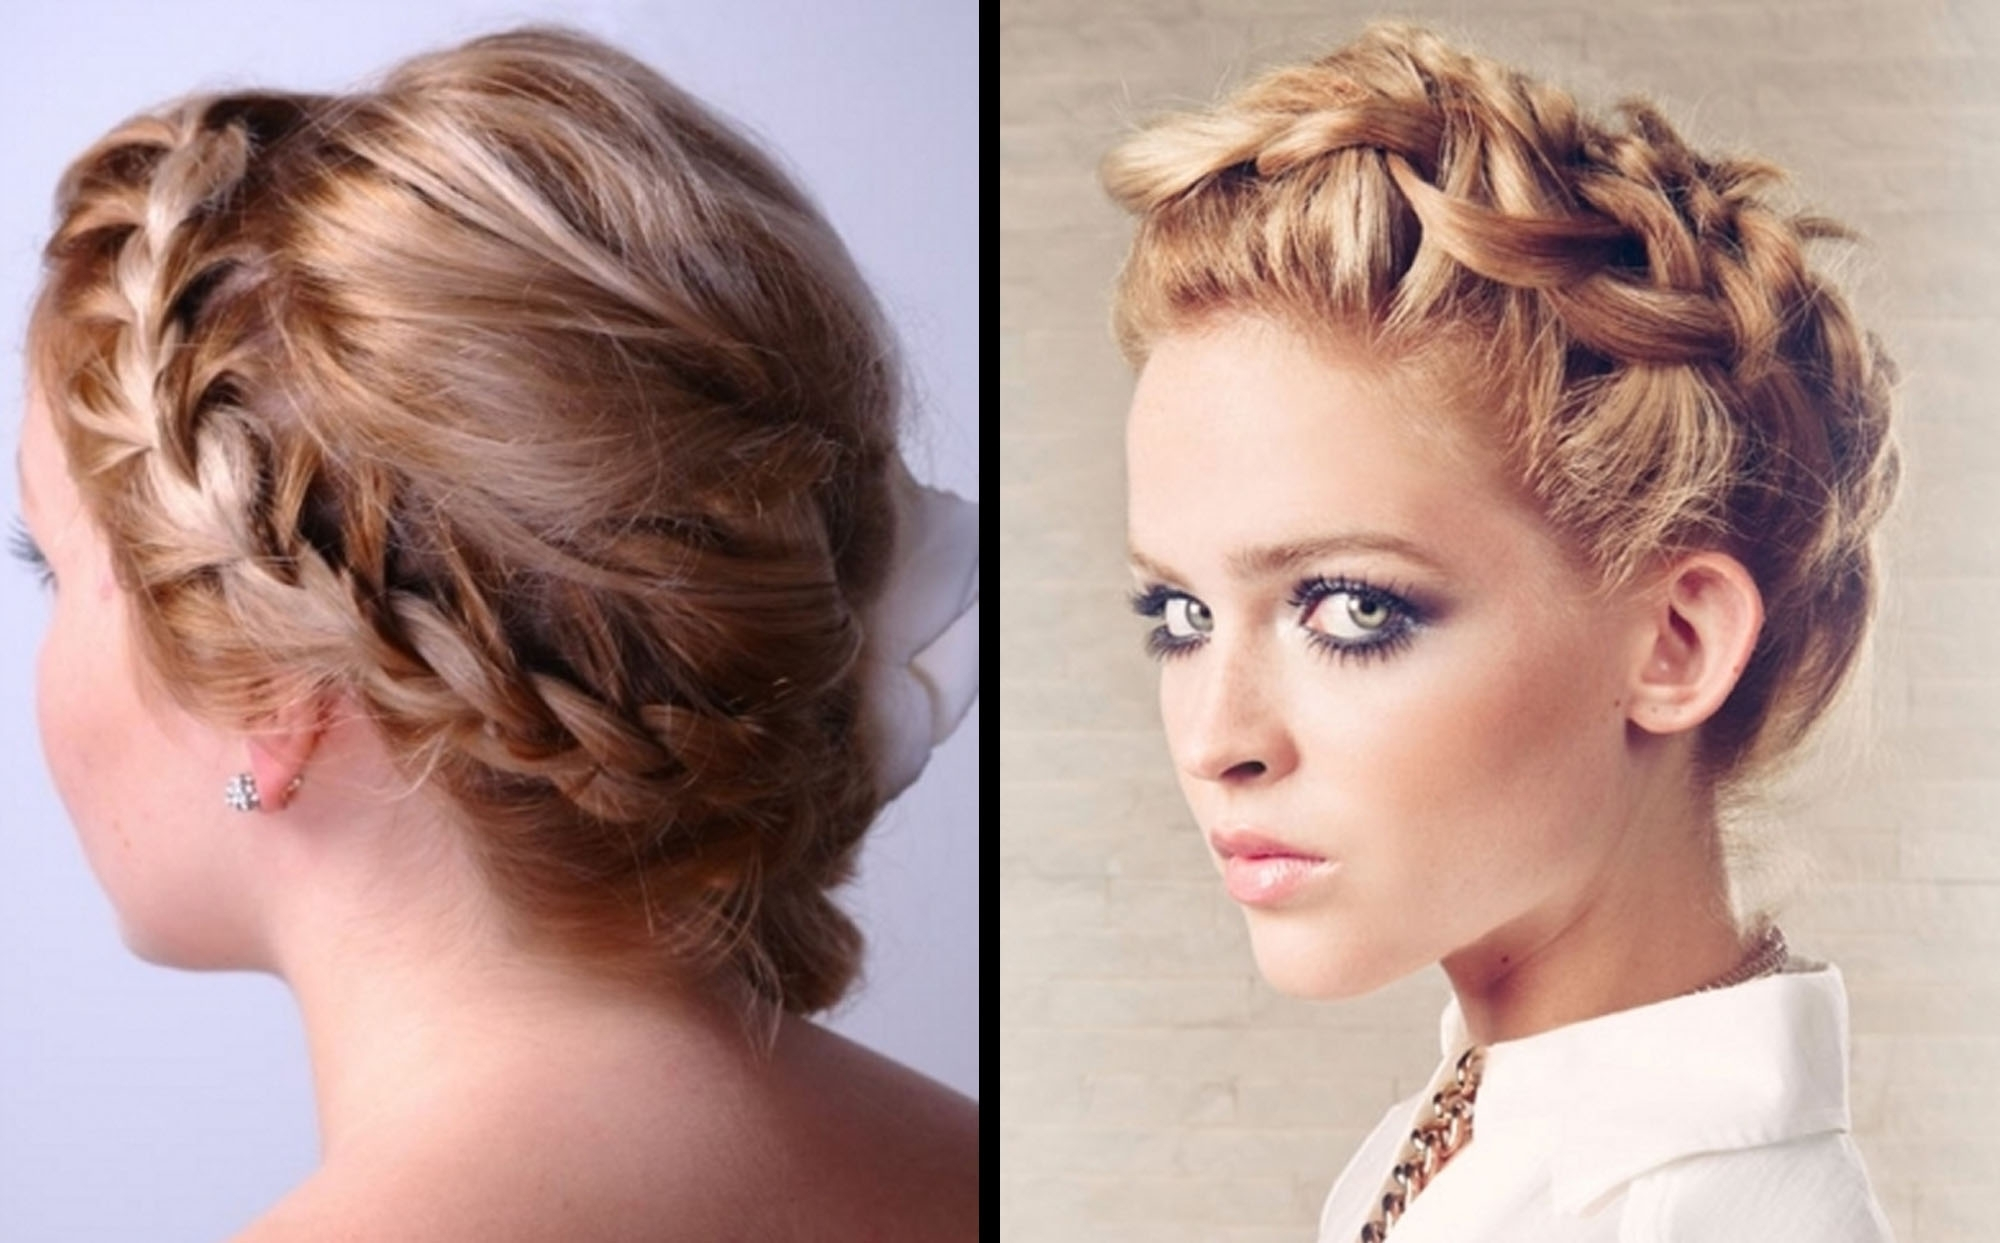 Updo Prom Hairstyles Short Prom Hairstyles Braids Medium Hair Styles Within Wavy Hair Updo Hairstyles (View 15 of 15)